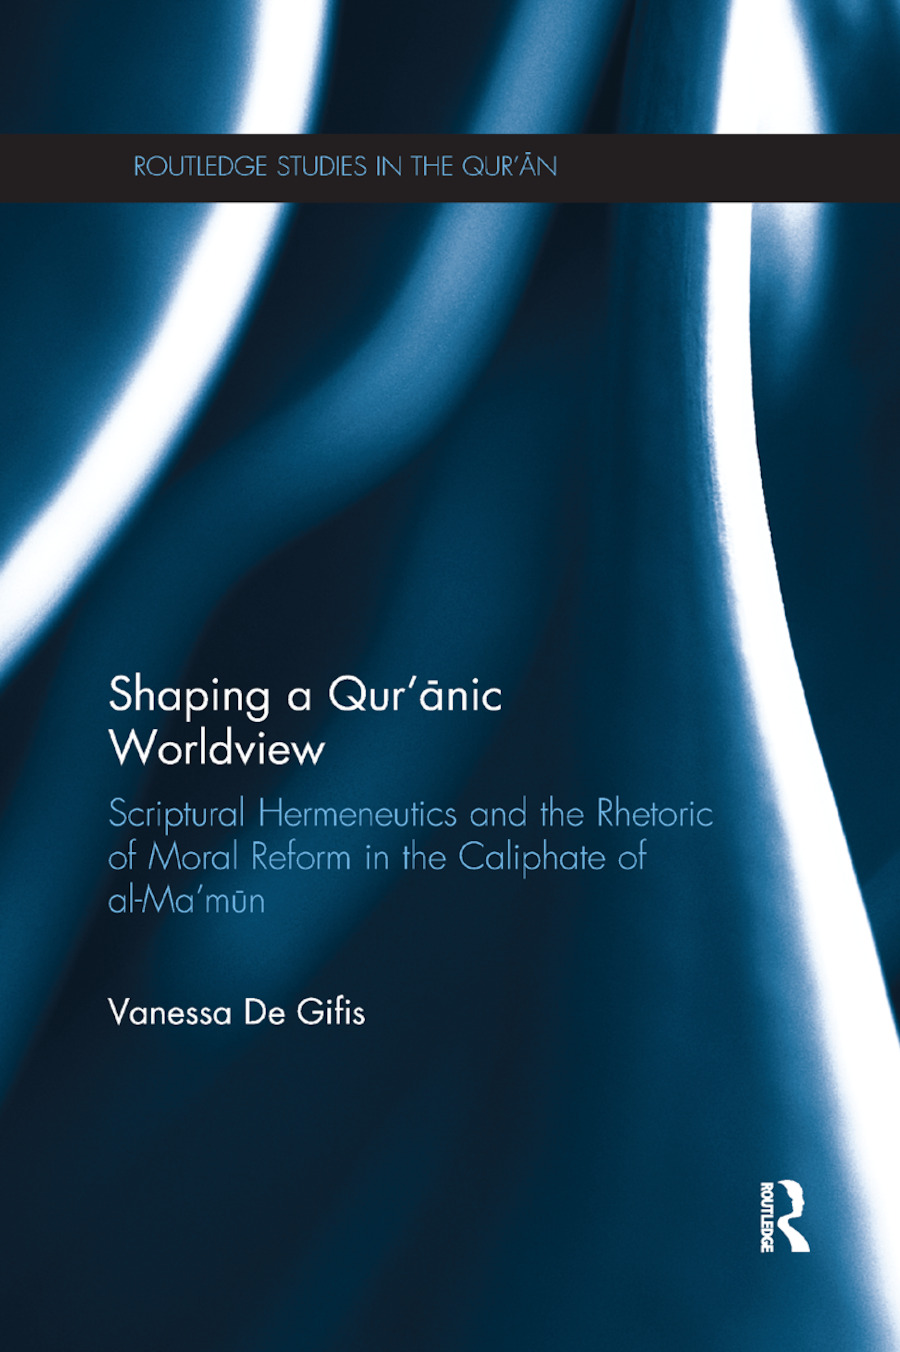 Shaping a Qur'anic Worldview: Scriptural Hermeneutics and the Rhetoric of Moral Reform in the Caliphate of al-Ma'un book cover